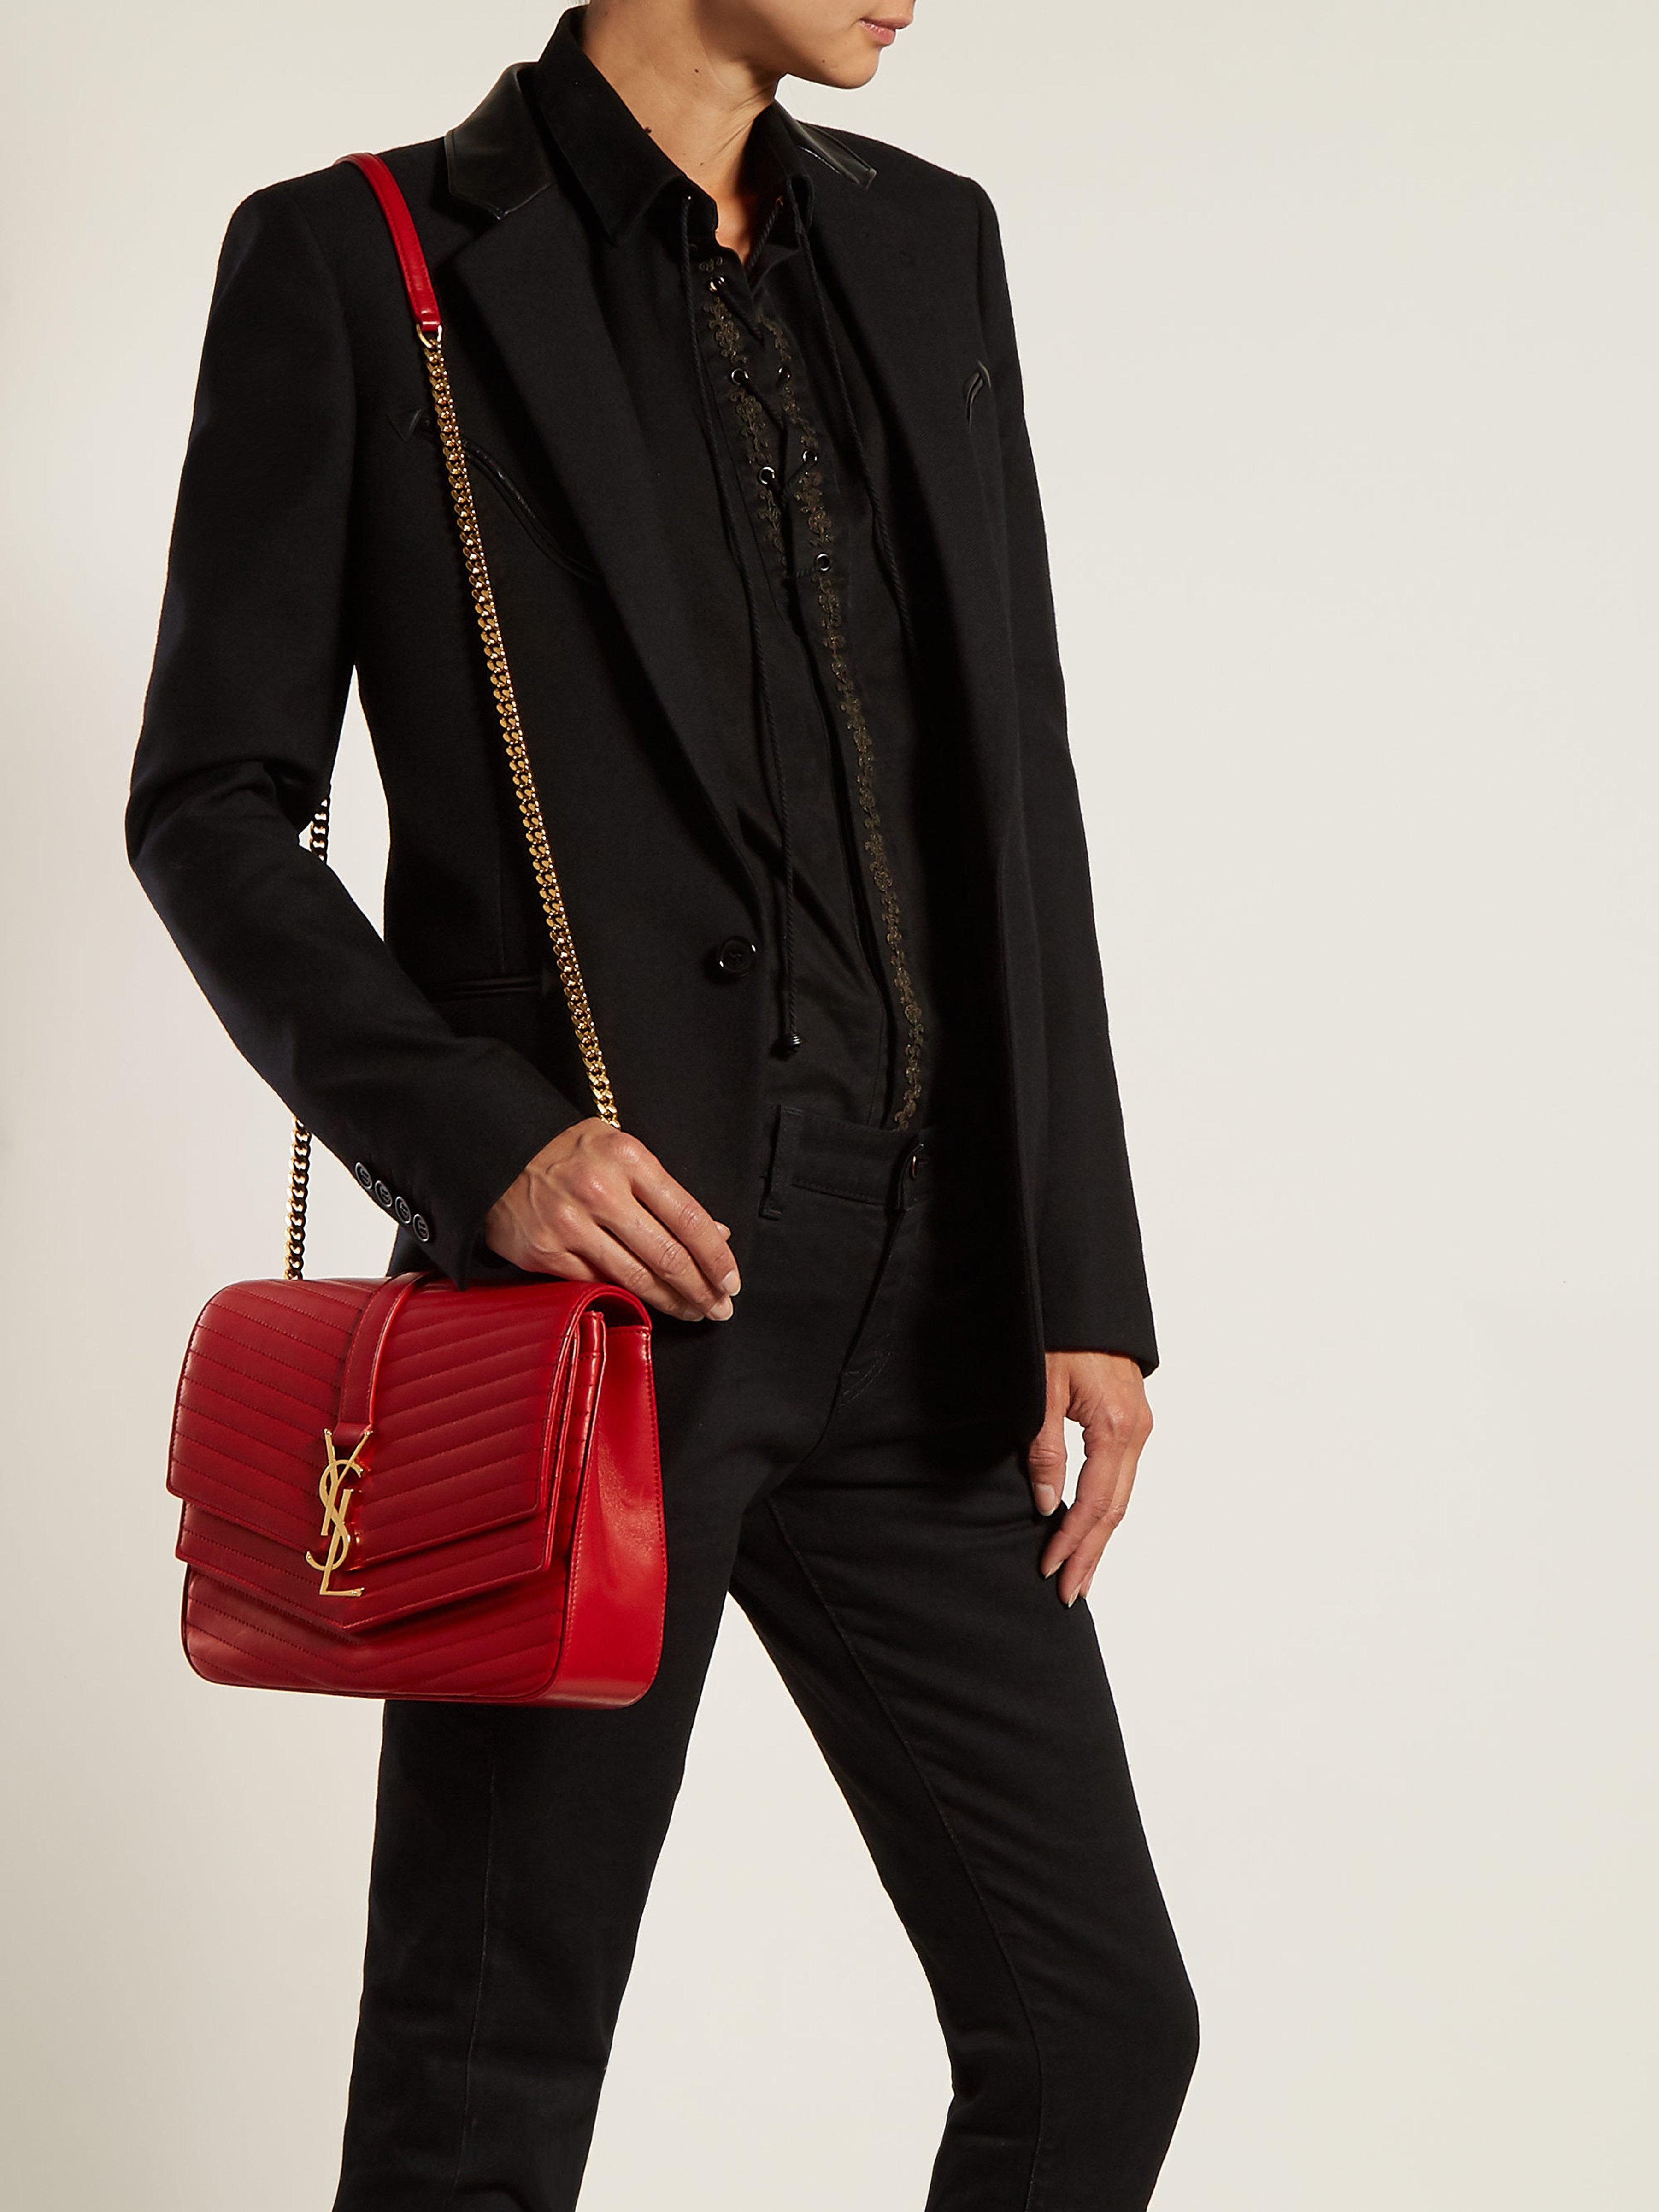 d67b26823f39 Saint Laurent Sulpice Small Leather Bag in Red - Lyst